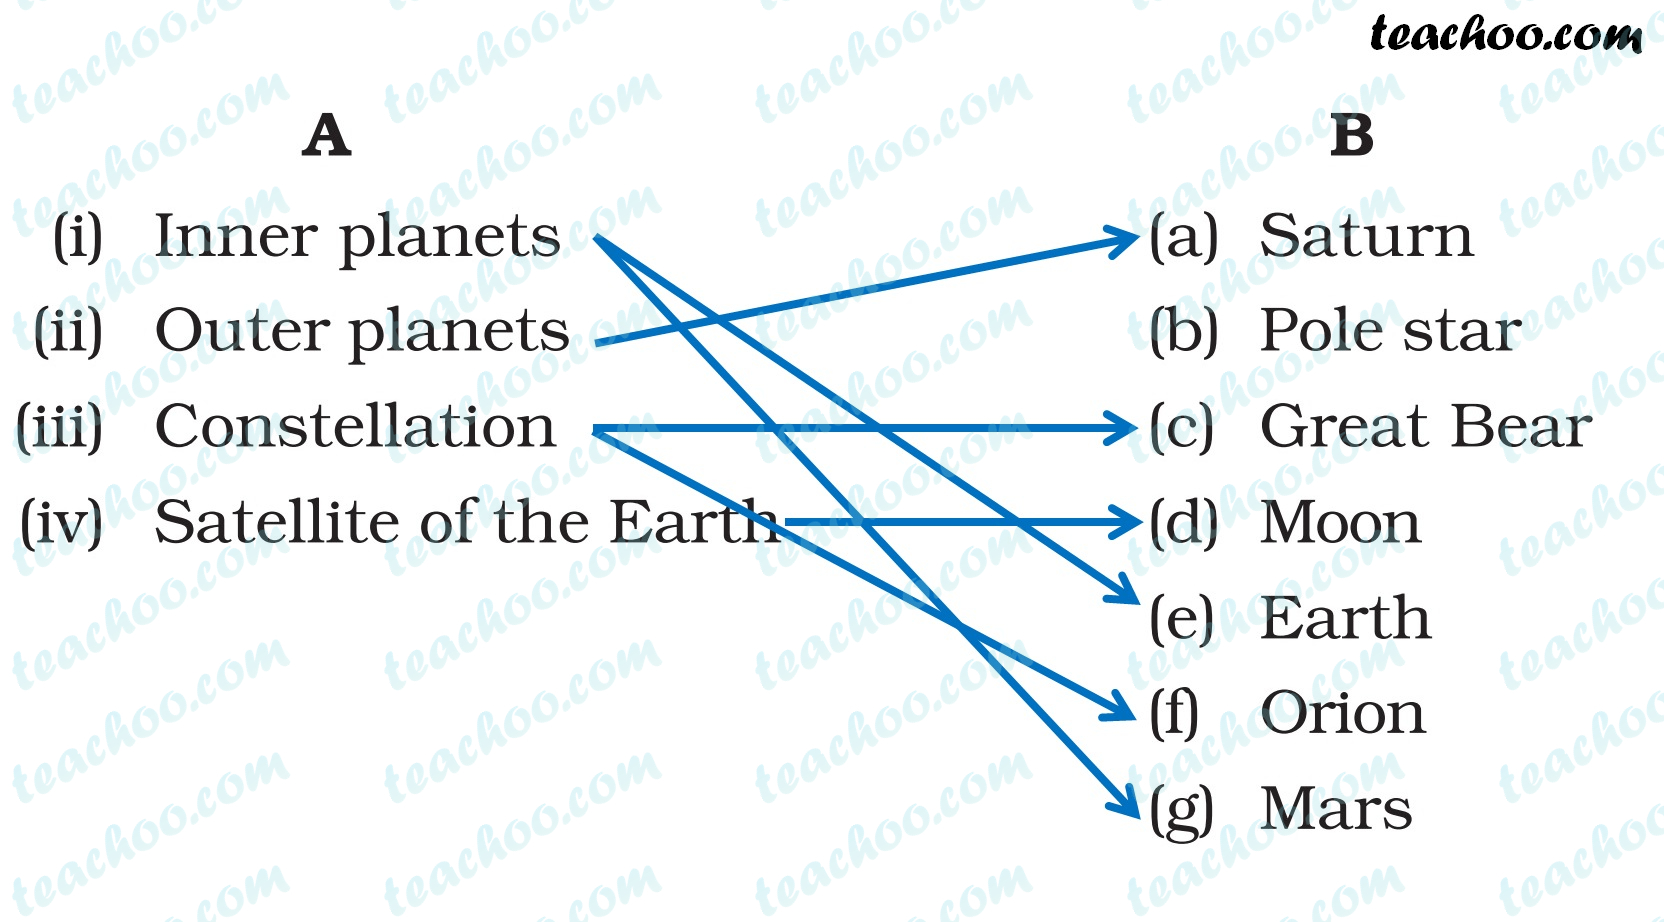 ncert-question-6-answer---chapter-17-class-8-science---stars-and-the-solar-system---teachoo.jpg